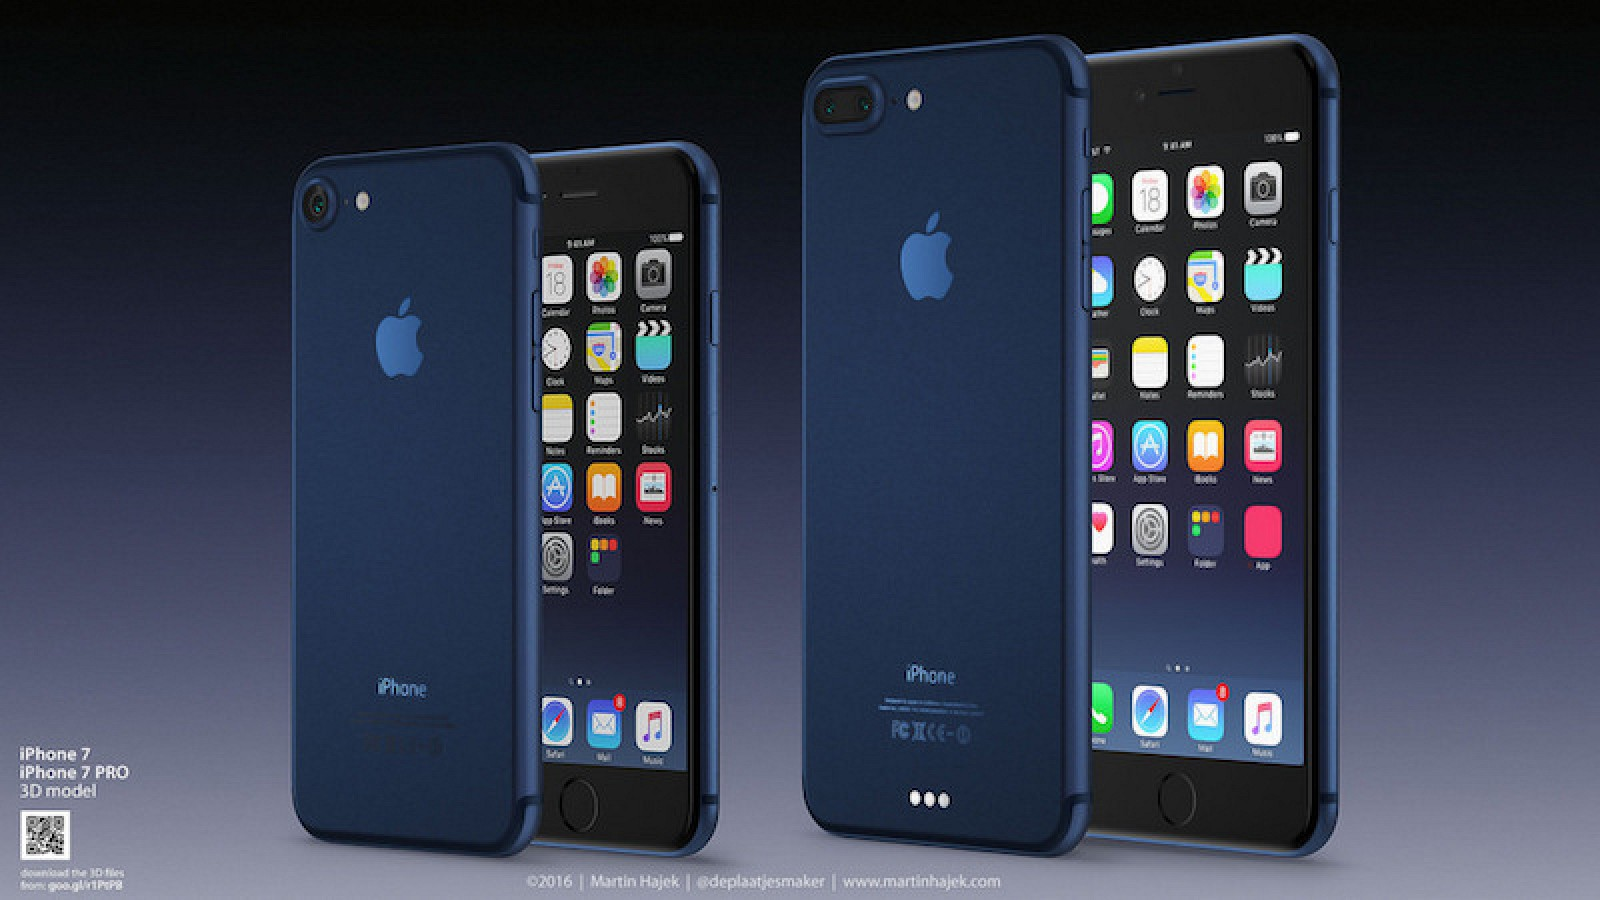 Concept Imagines What A Deep Blue Or Dark IPhone 7 Could Look Like